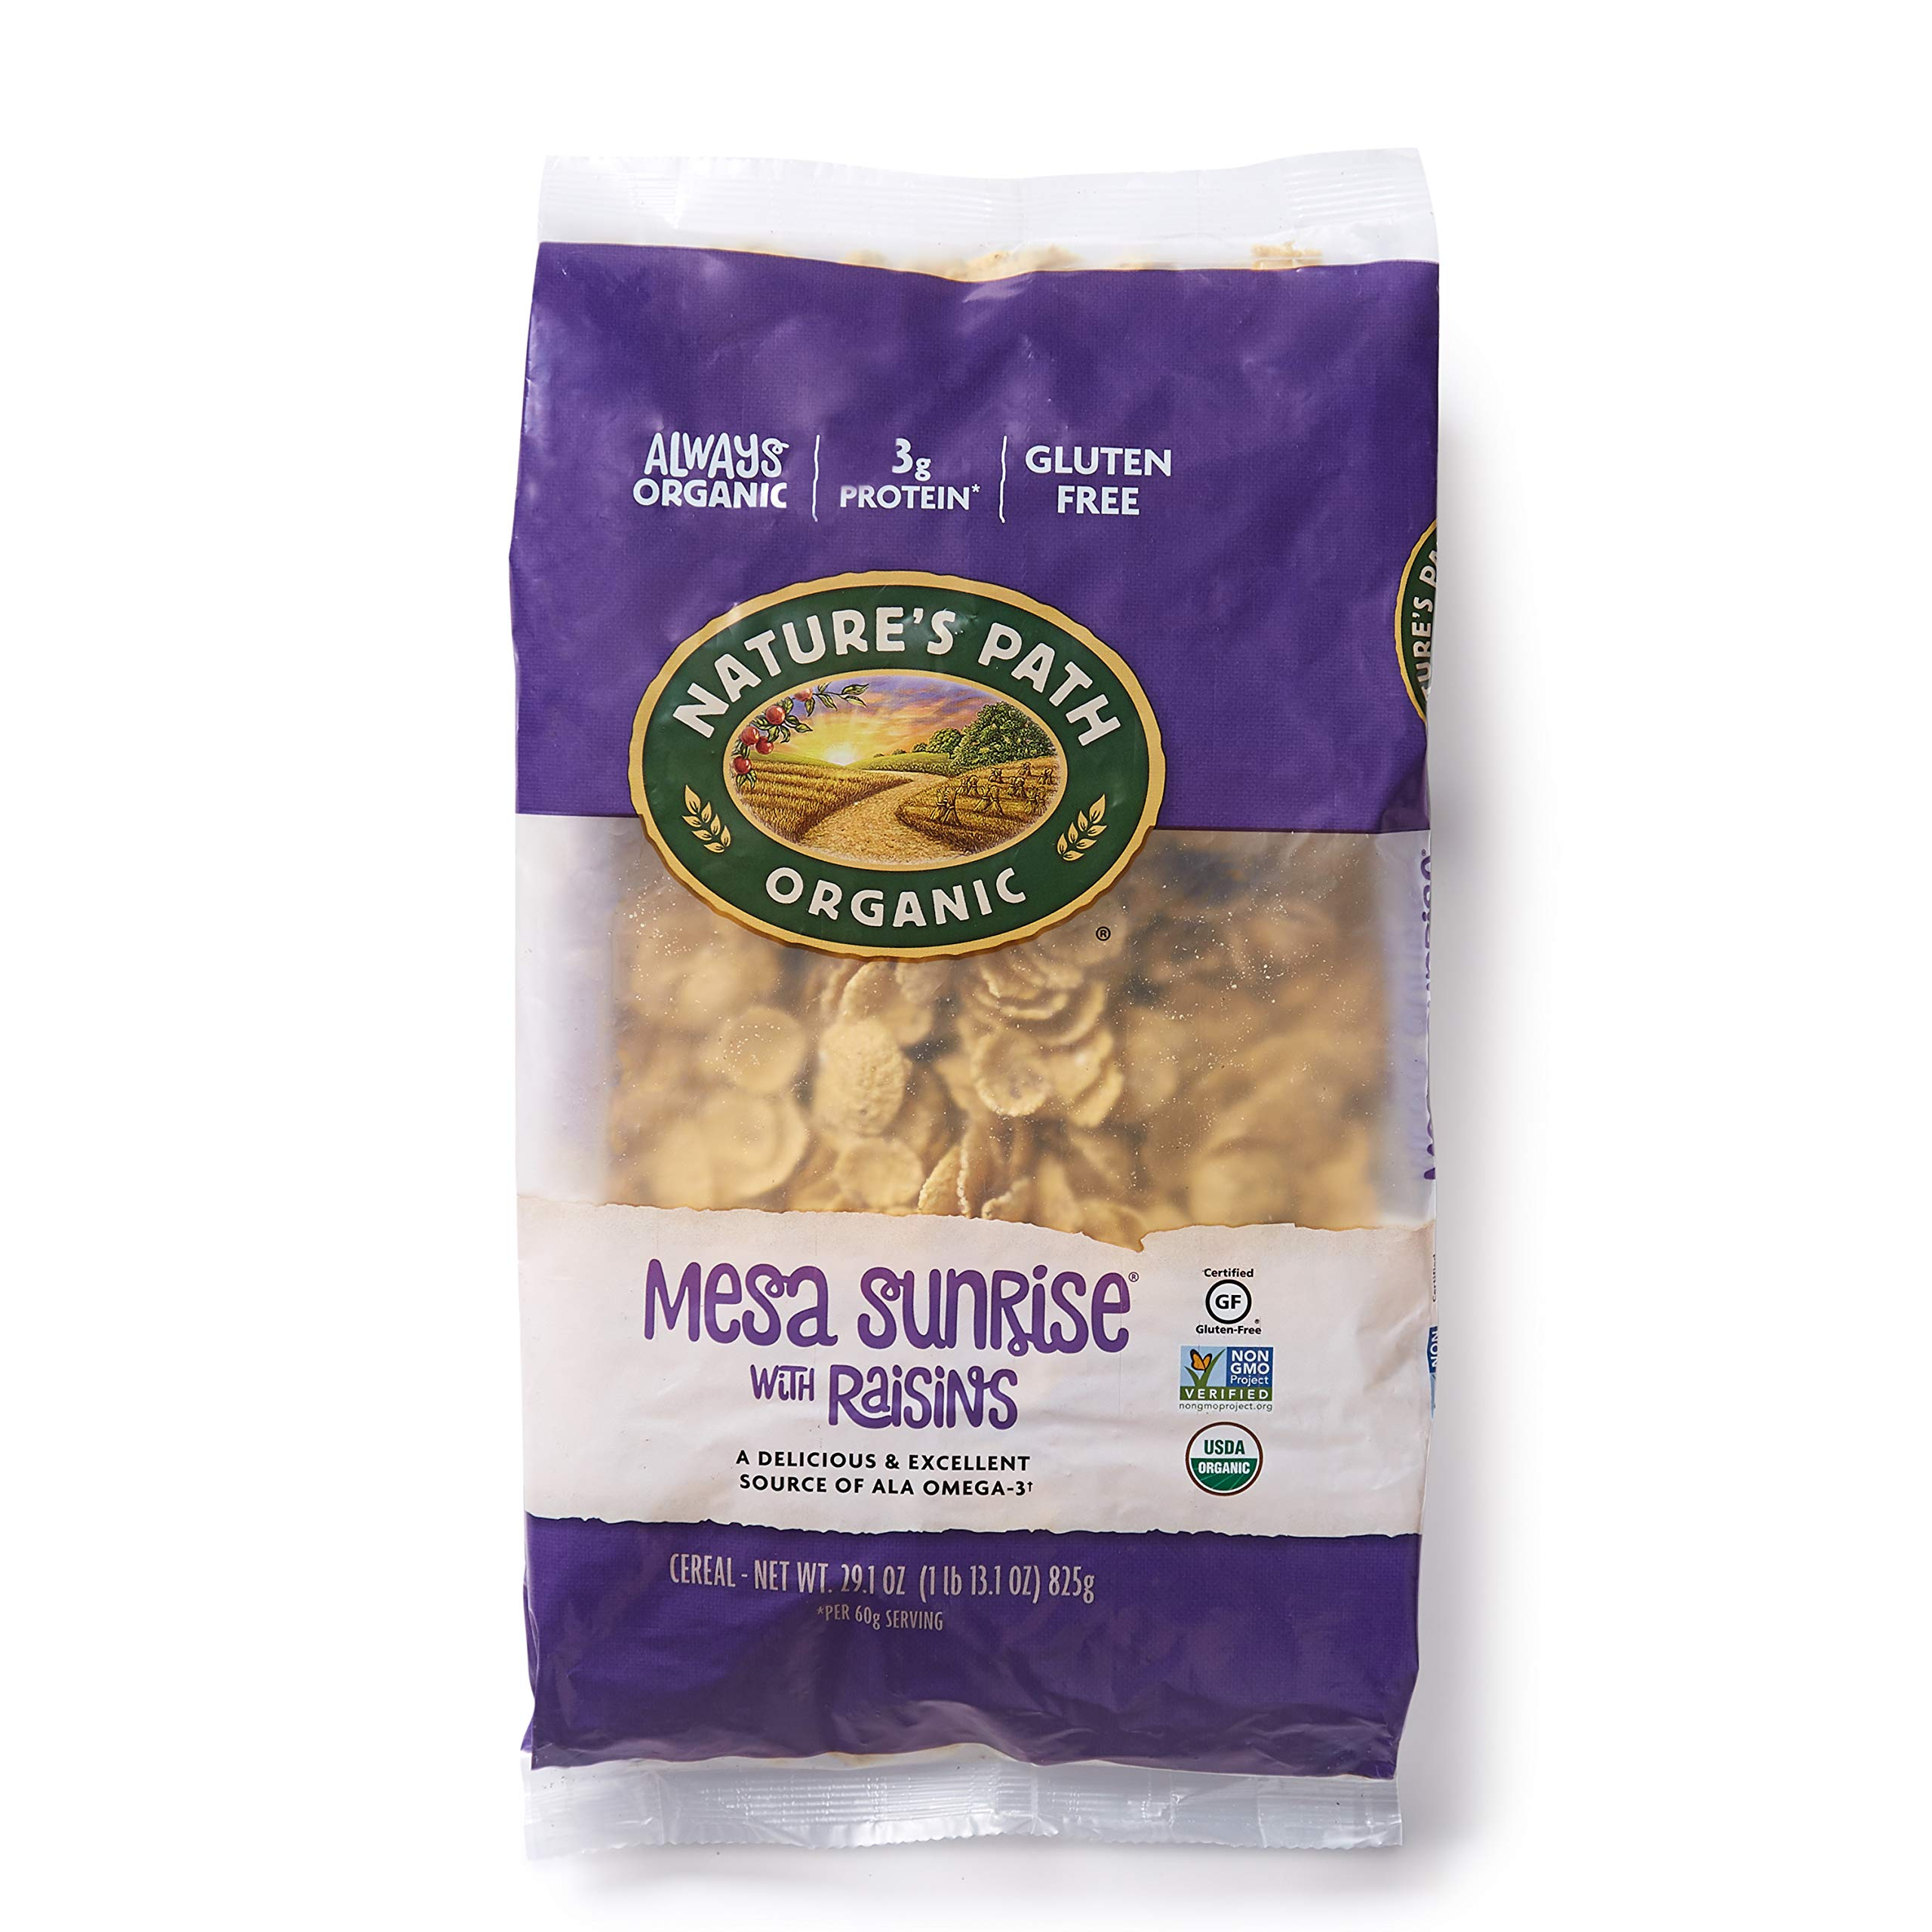 Nature's Path Mesa Sunrise with Raisins Cereal, Healthy, Organic, Gluten-Free, 29.1 Ounce (Pack of 6) by Nature's Path